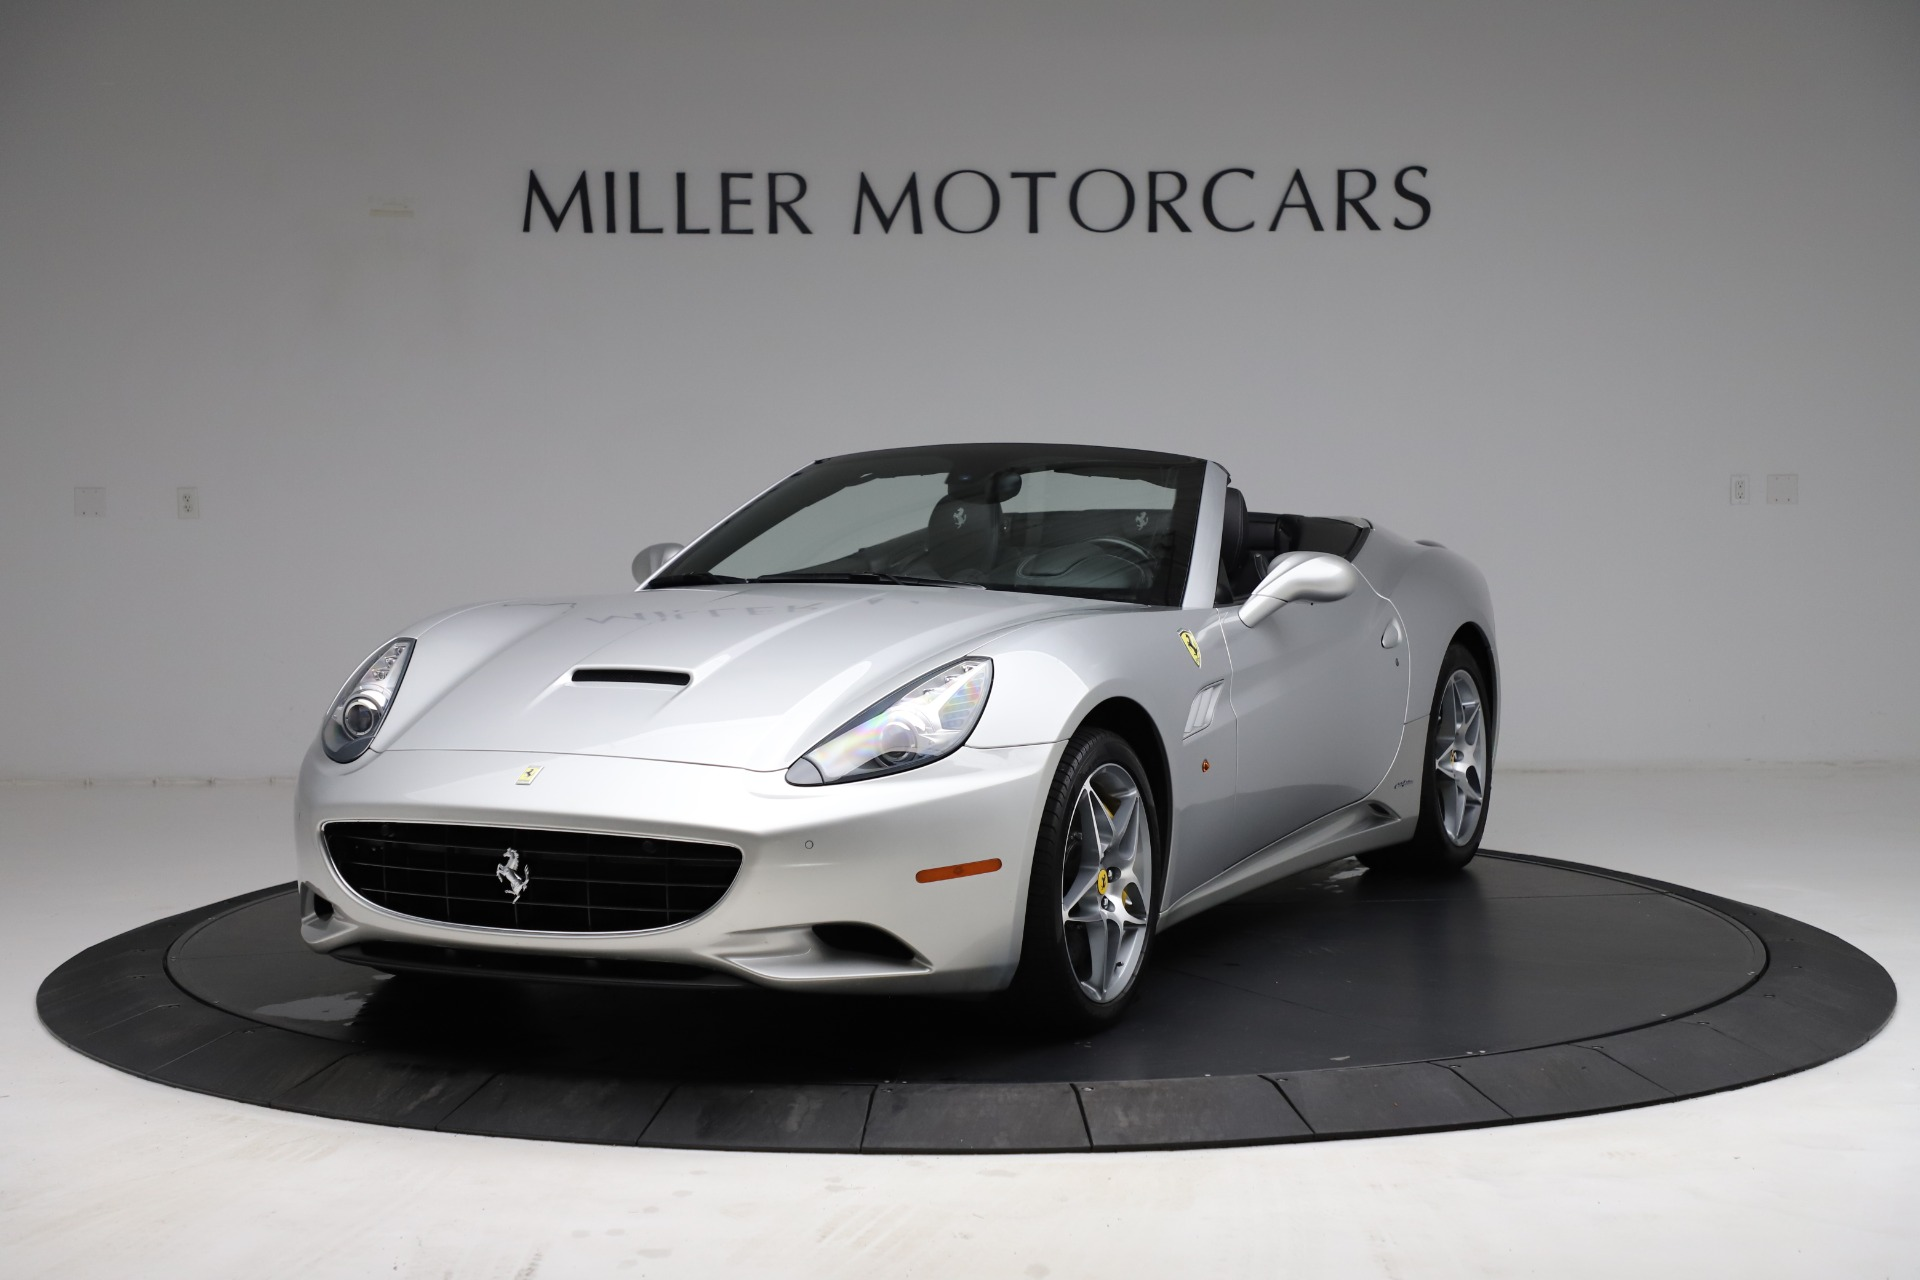 Used 2010 Ferrari California for sale $114,900 at Bentley Greenwich in Greenwich CT 06830 1